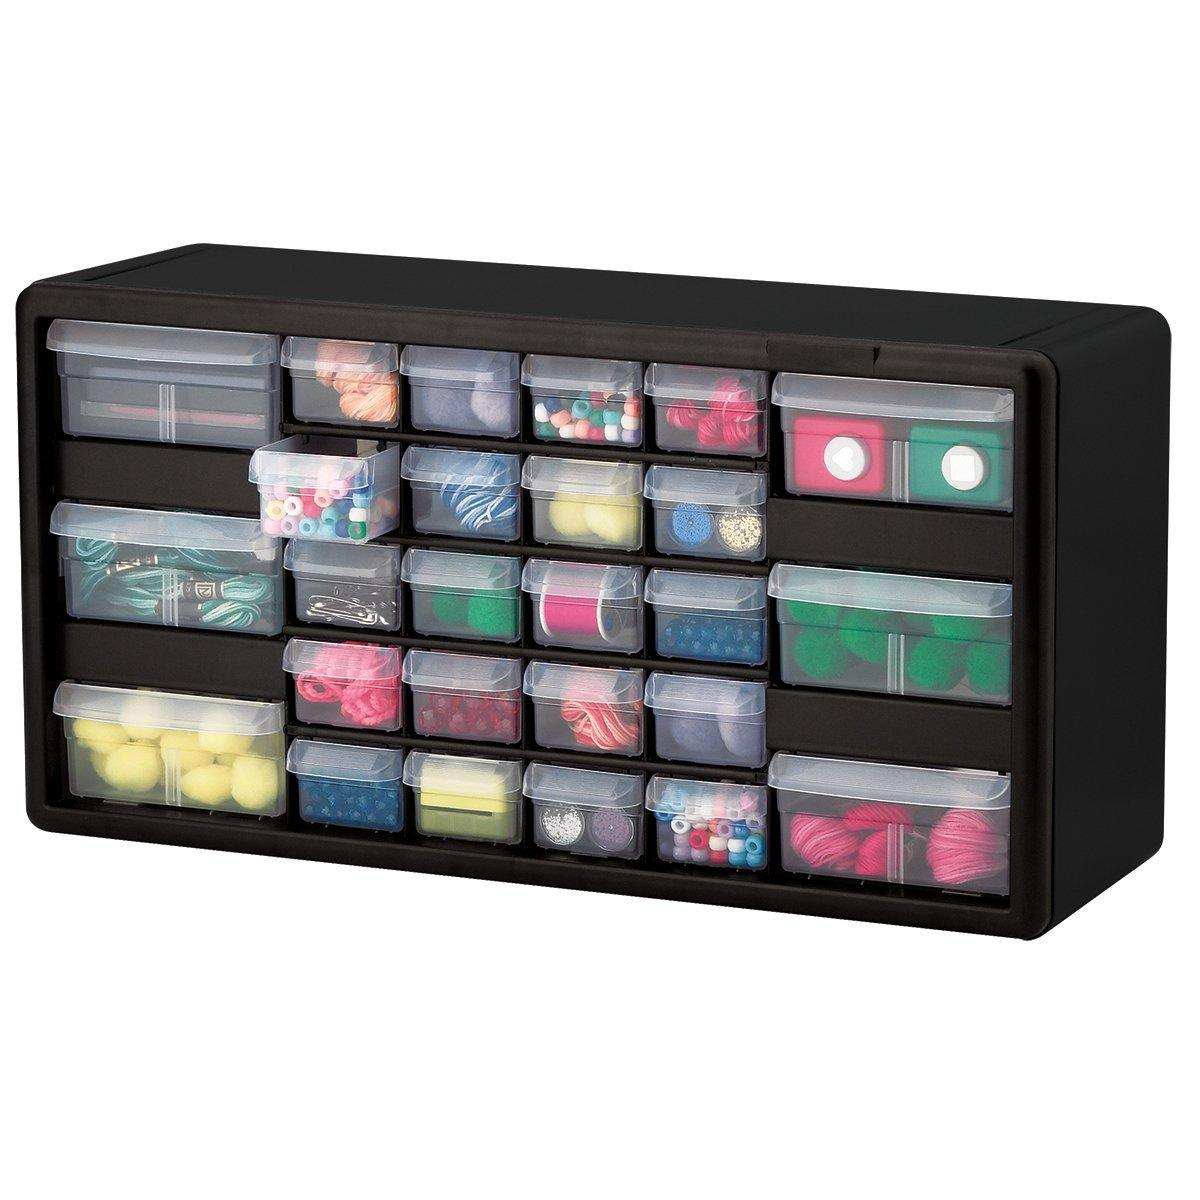 Akro-Mils 10126 26 Drawer Plastic Parts Storage Hardware and Craft Cabinet